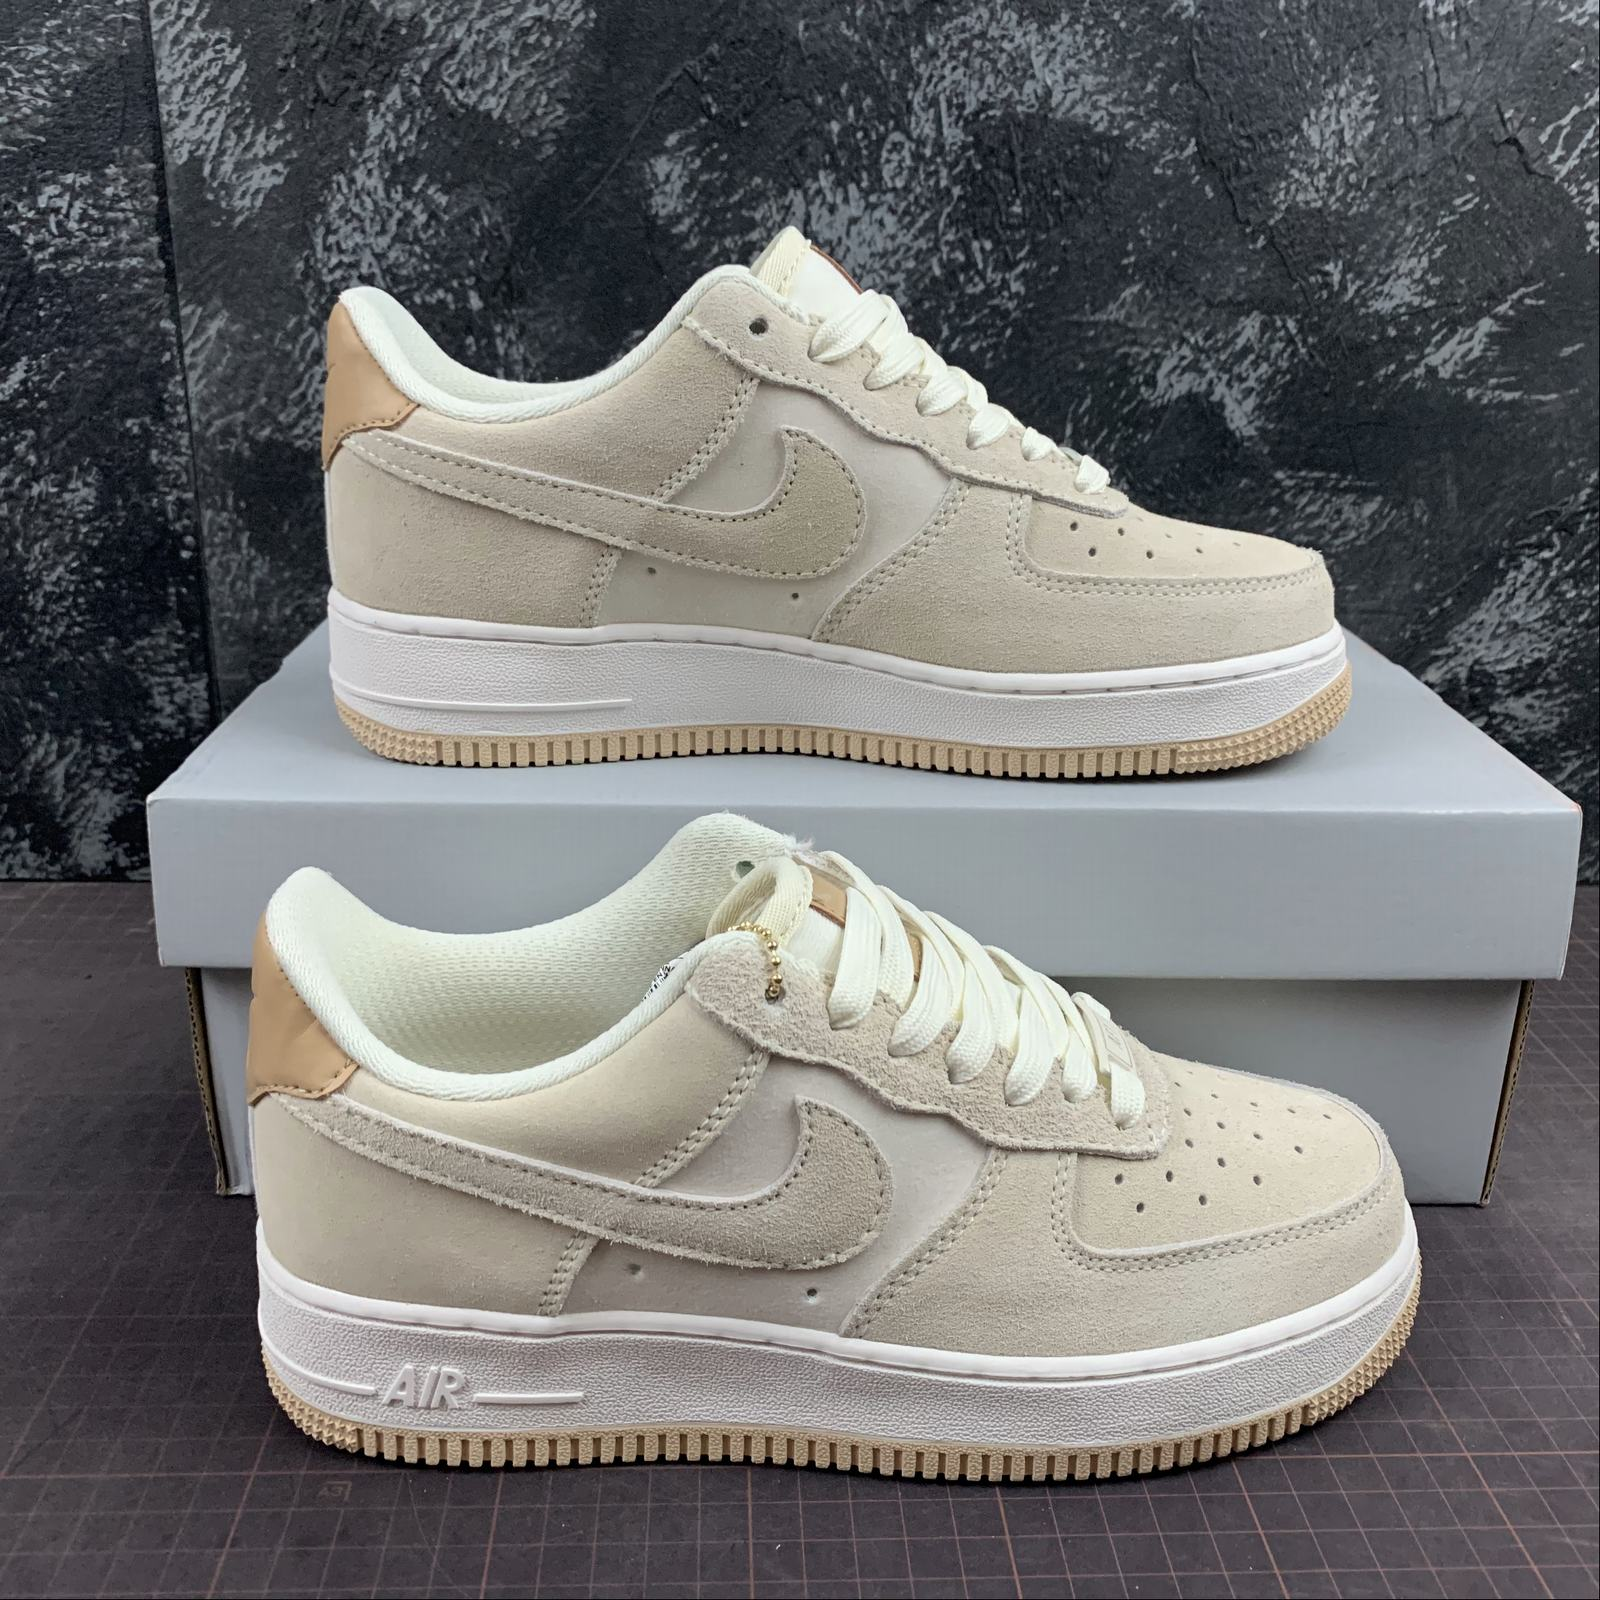 giay-sneaker-nike-air-force-107-896185-102-da-lon-pale-ivory